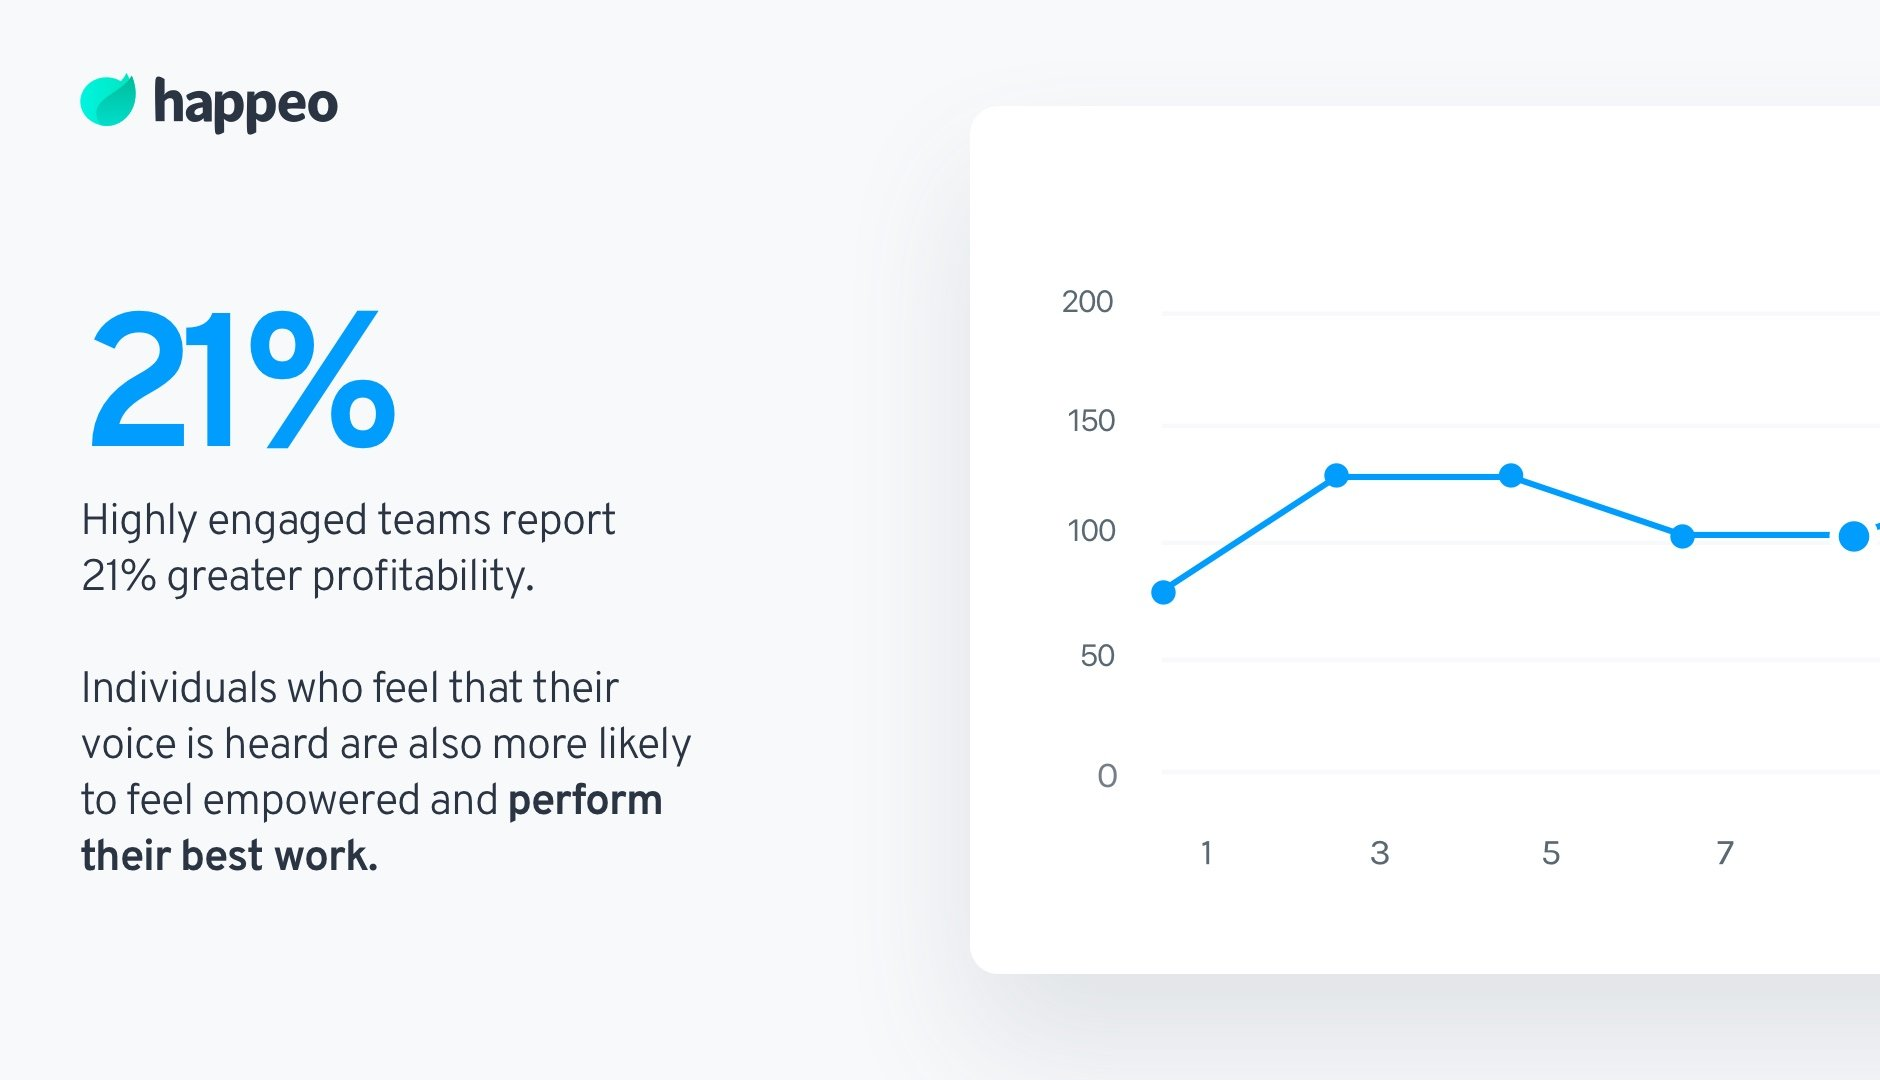 engaged teams and profitability